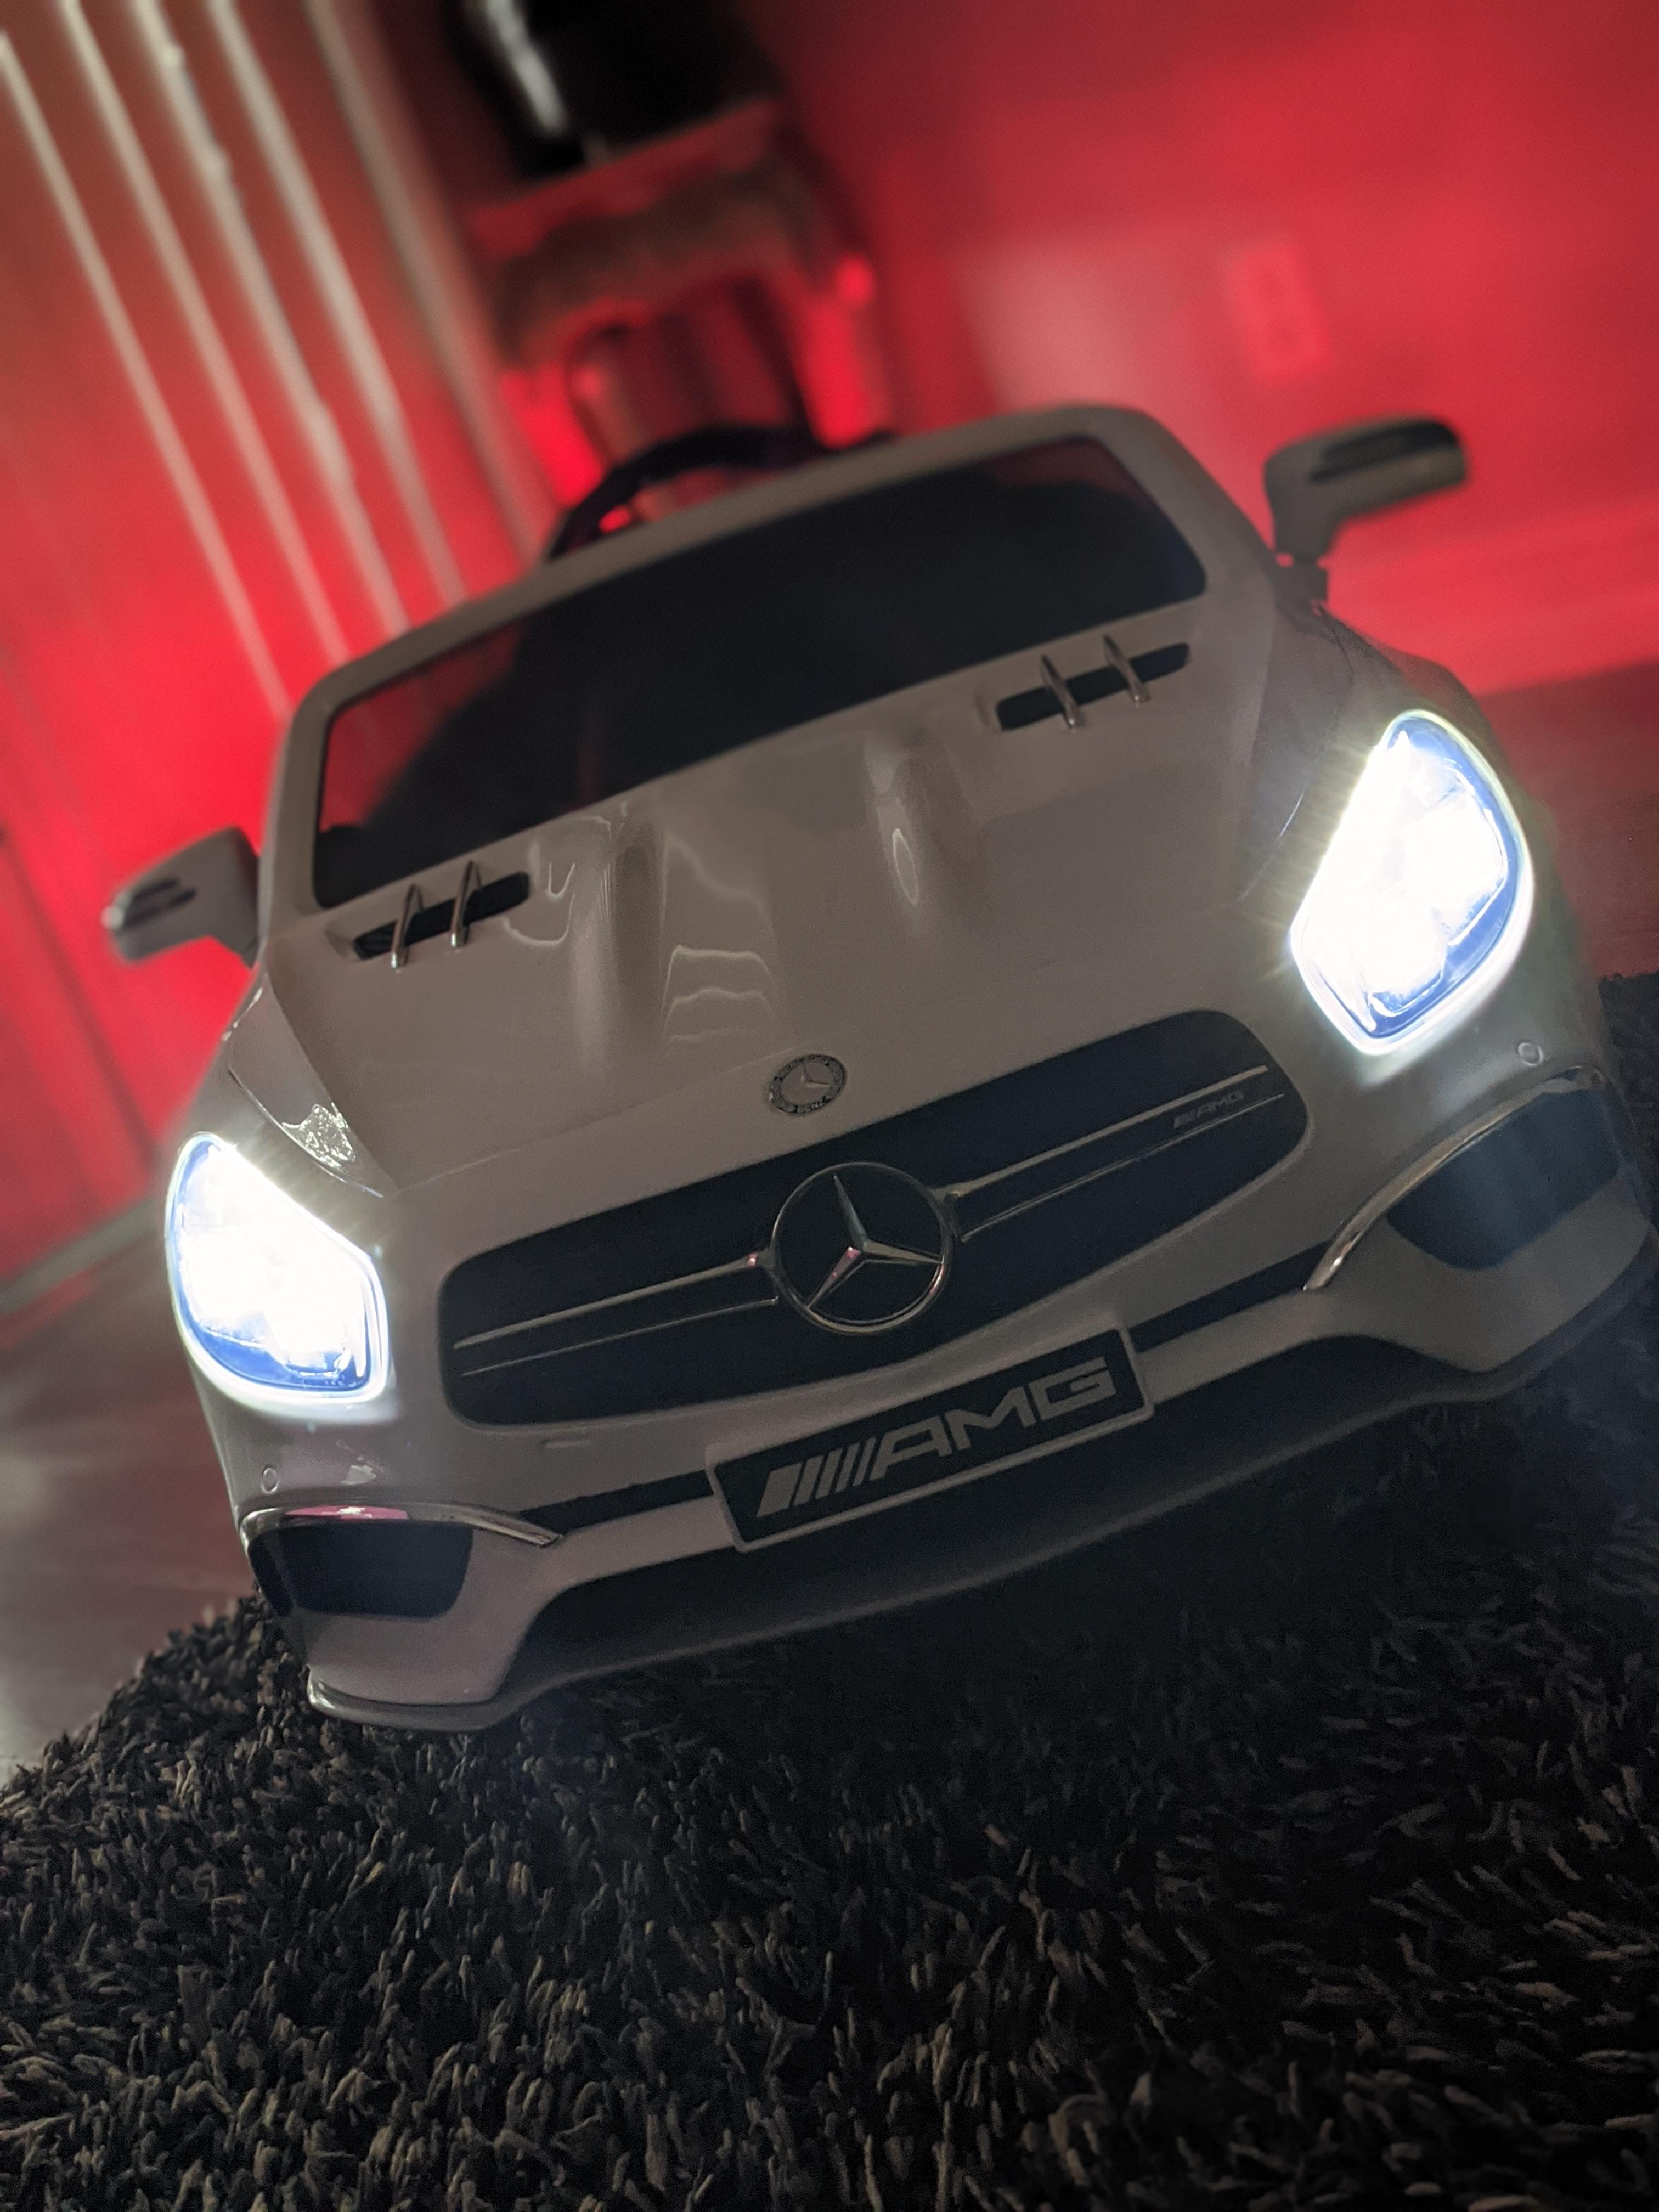 12V Mercedes Benz 2 Seater Kids Power Wheels With Remote, White photo review